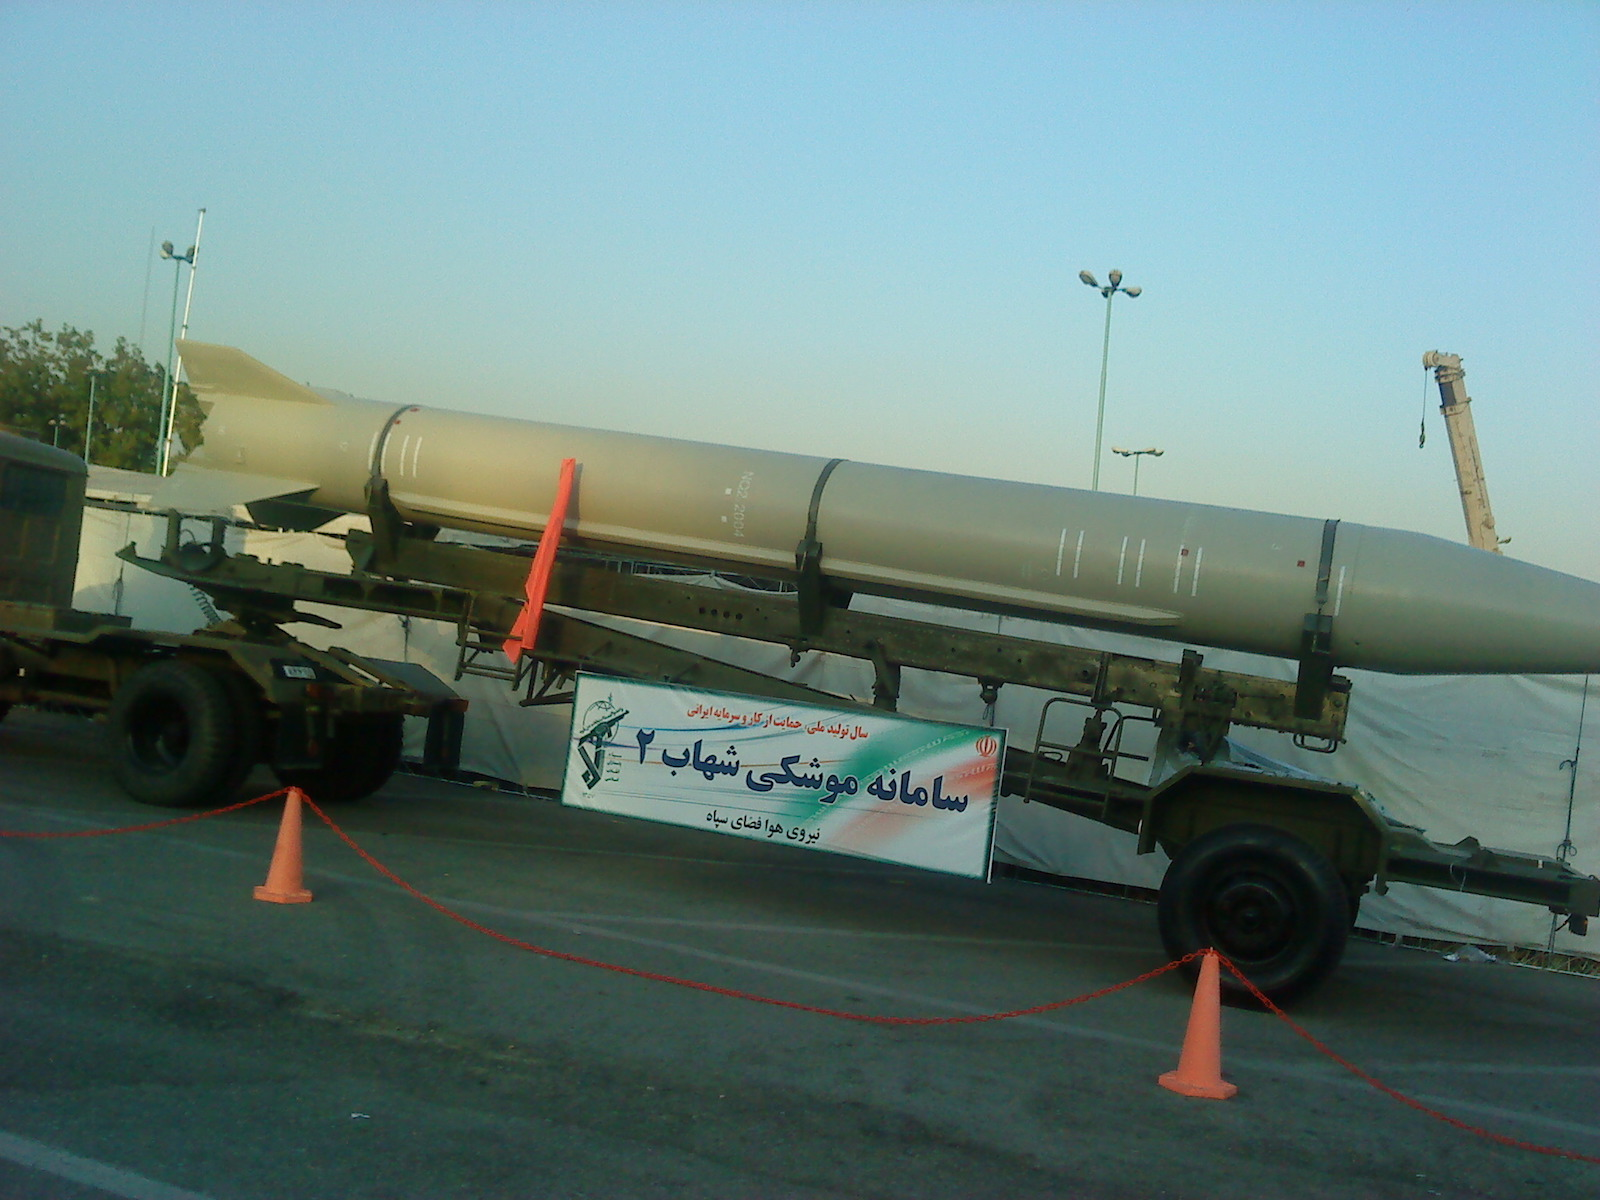 An Iranian Shahab-2 missile. The US has passed sanctions against Iran for its ballistics program.